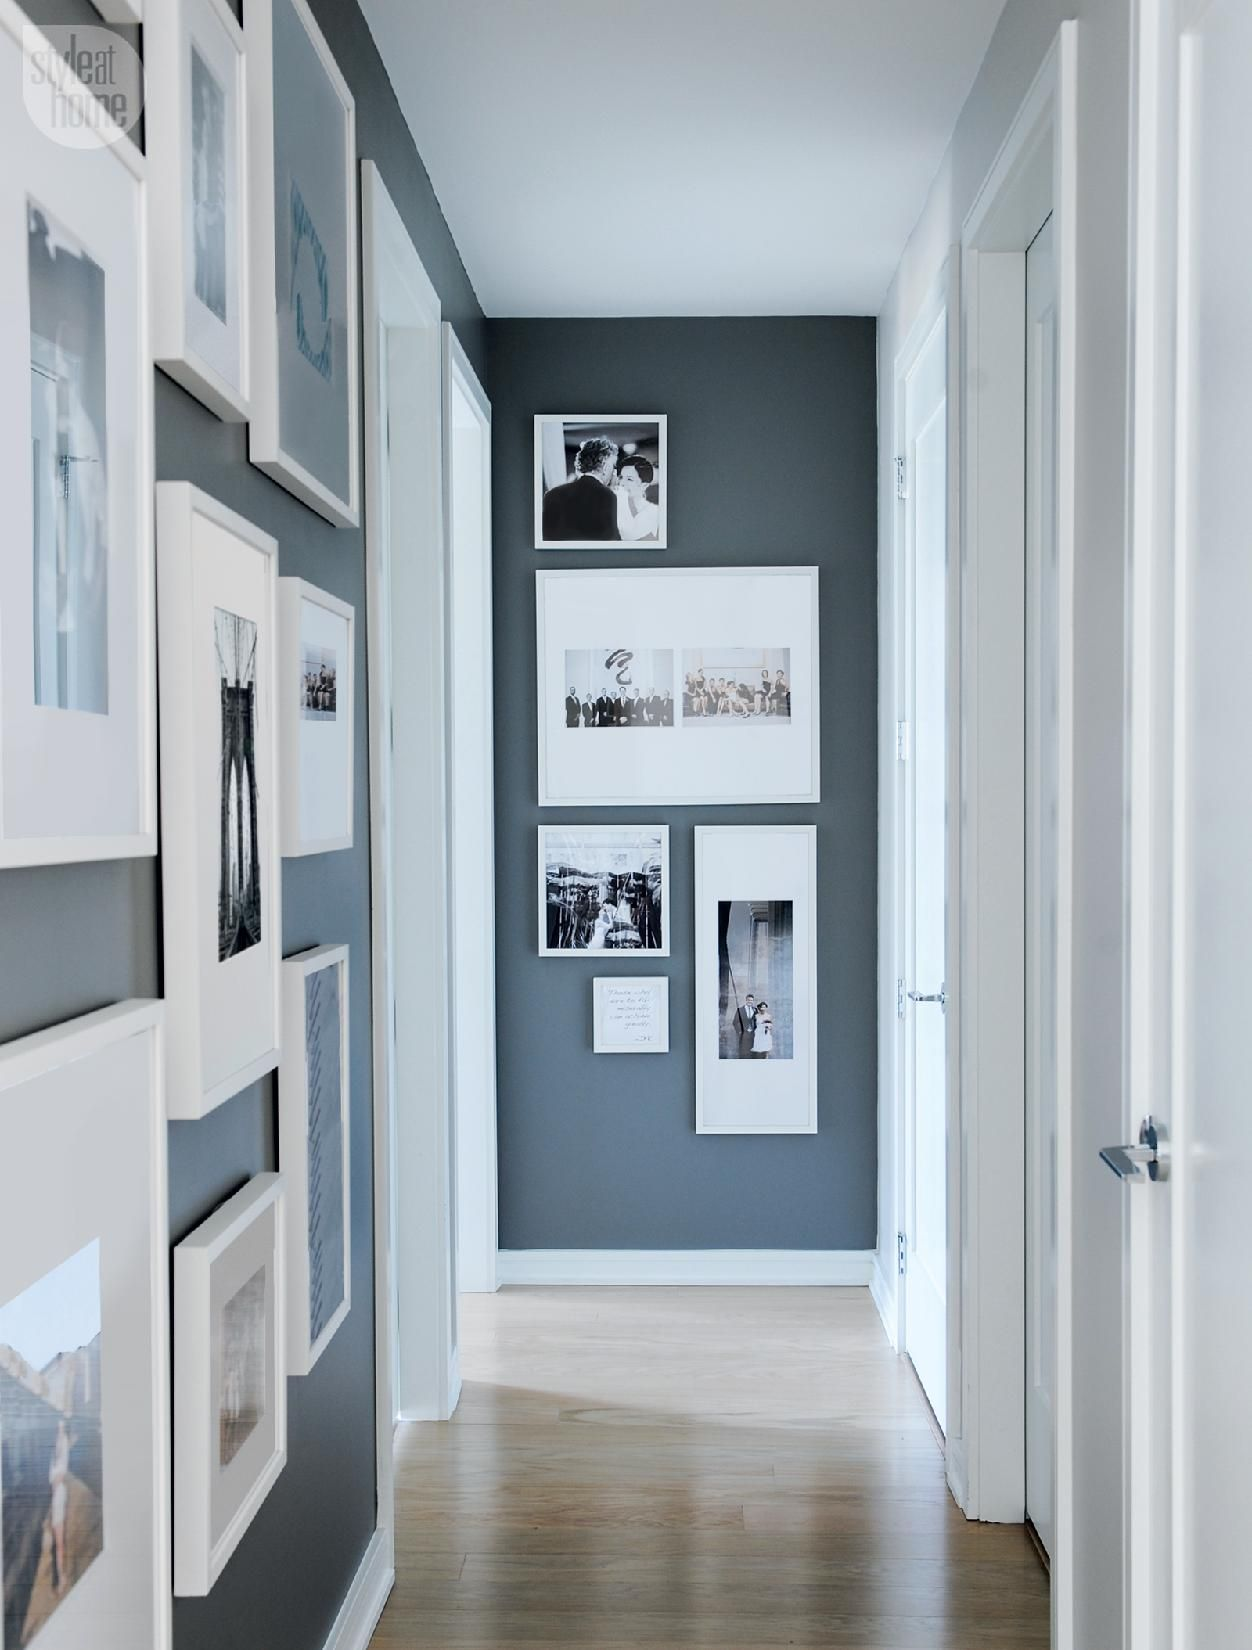 8 ways to turn your house into a home   Space gallery, Wall photos ...